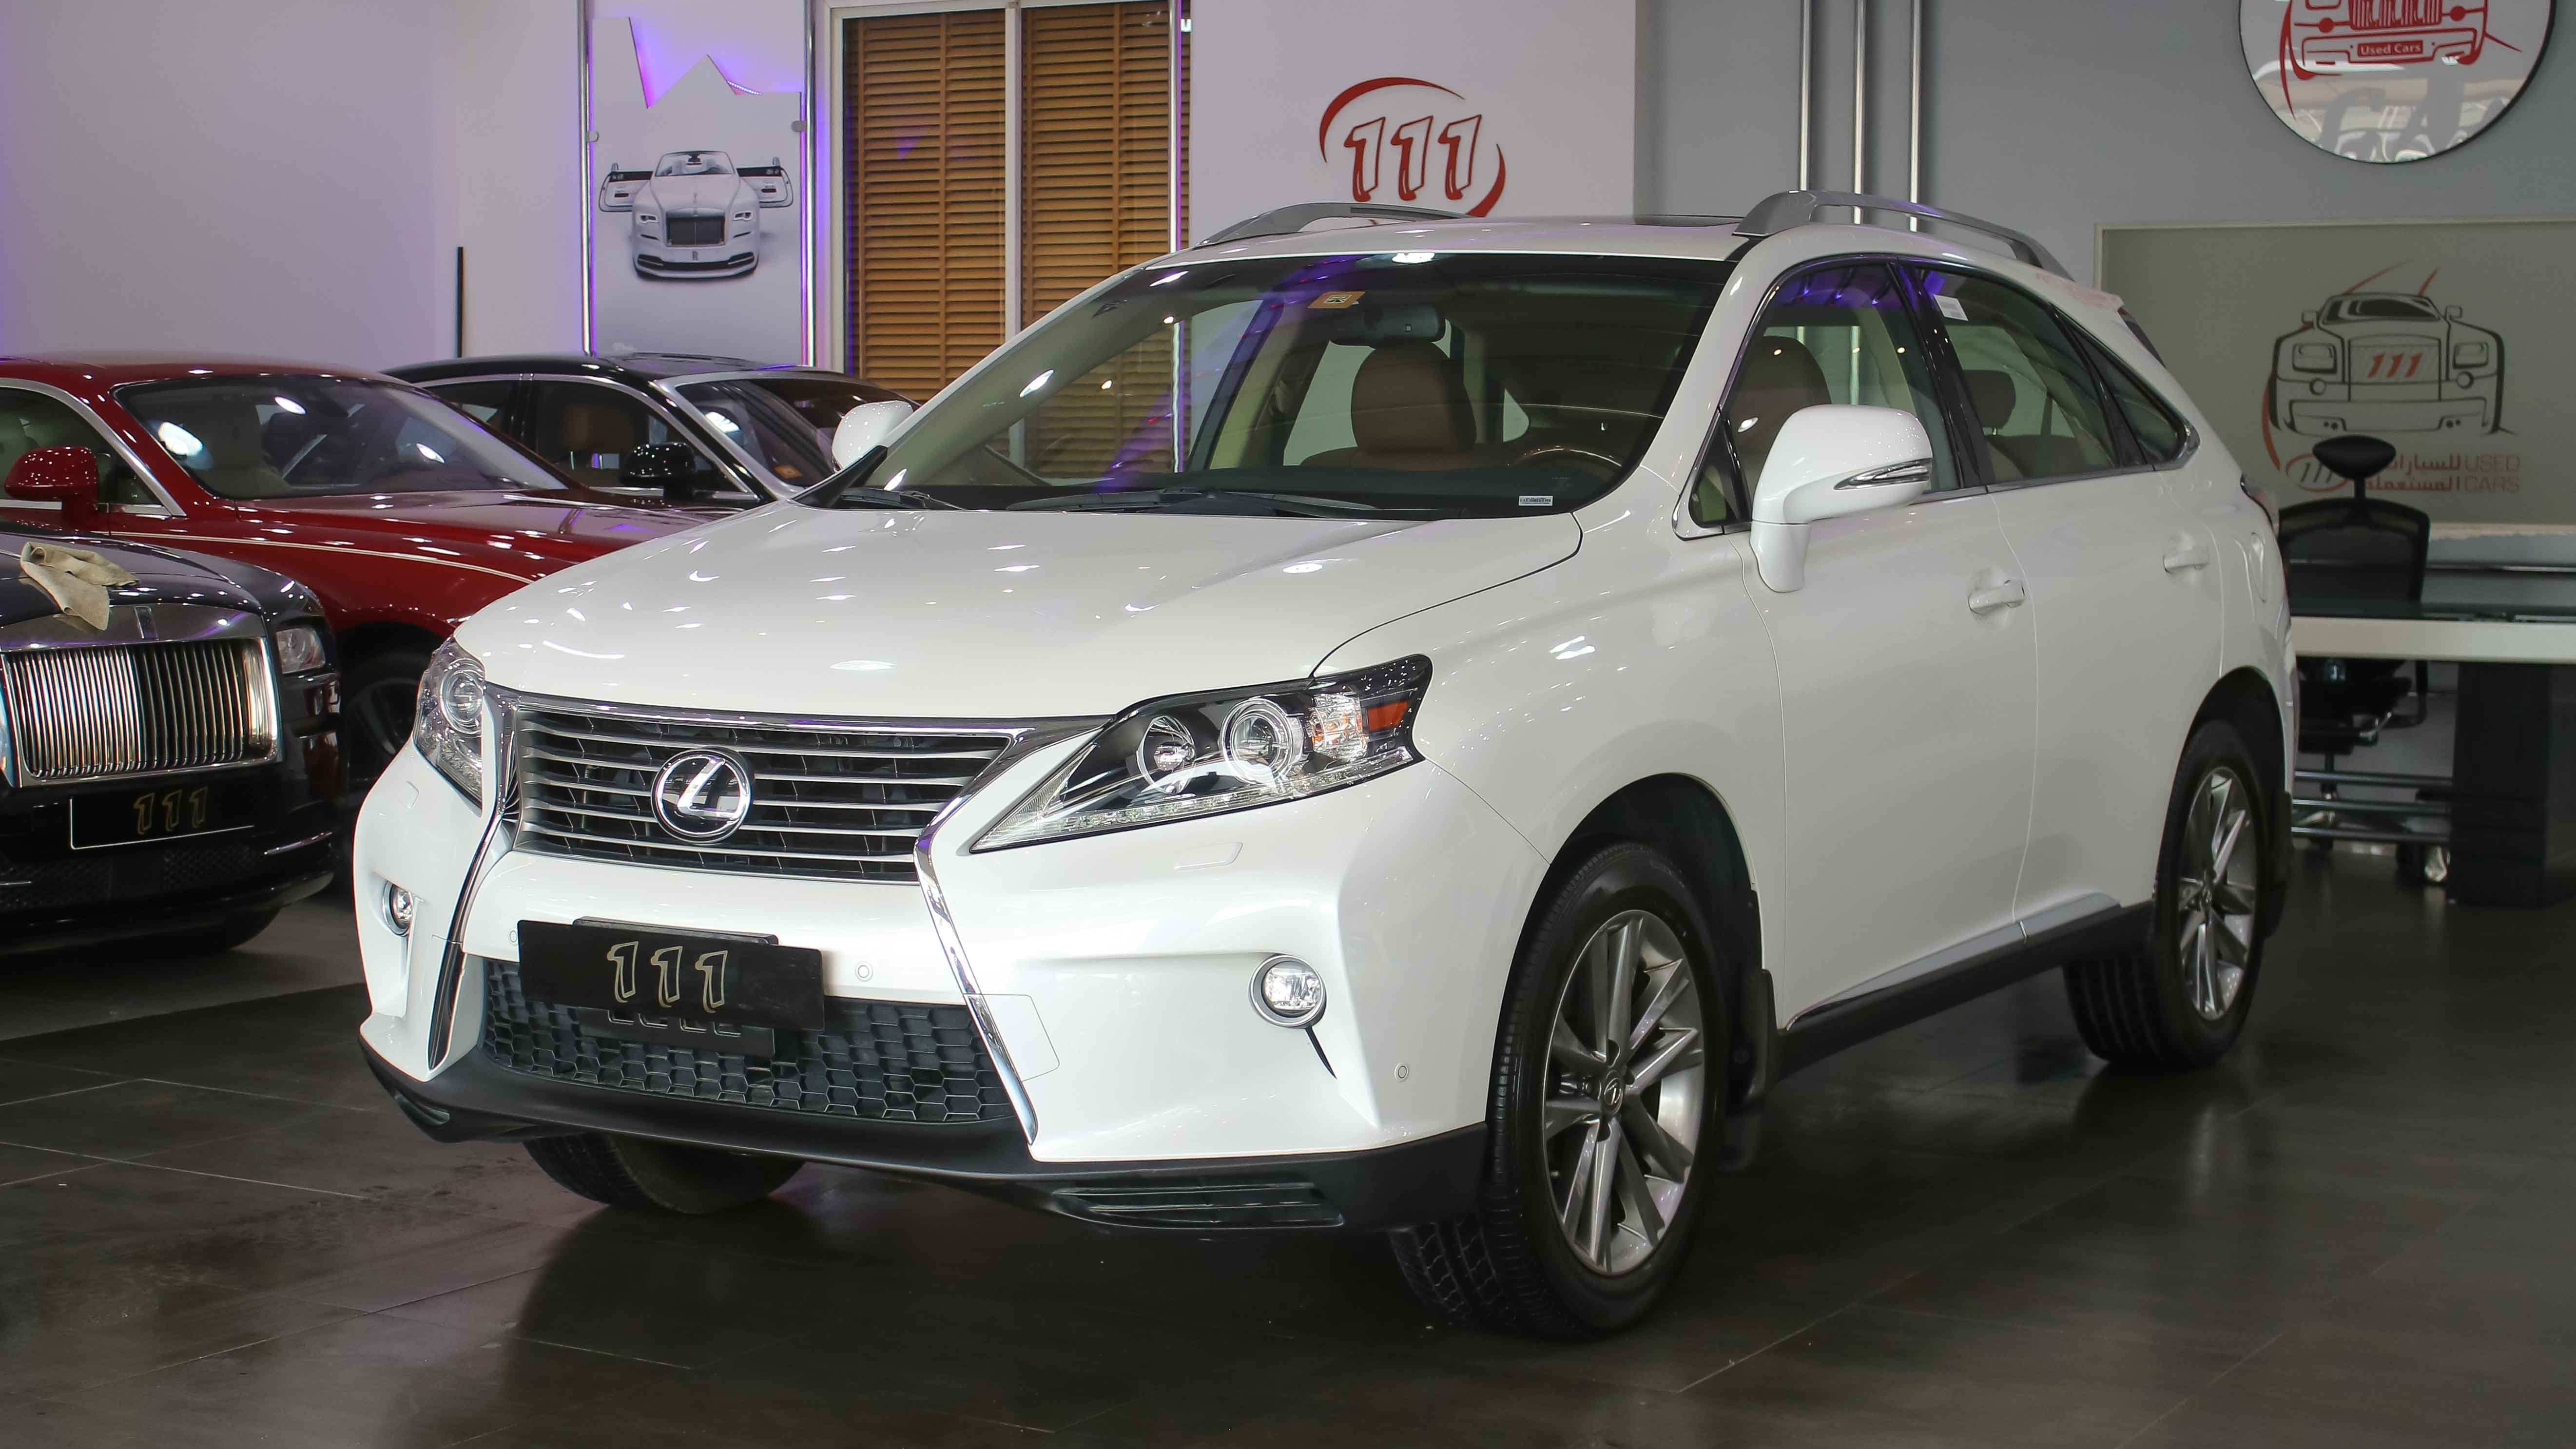 2015 Lexus RX 350 / GCC Specifications / Warranty Lexus